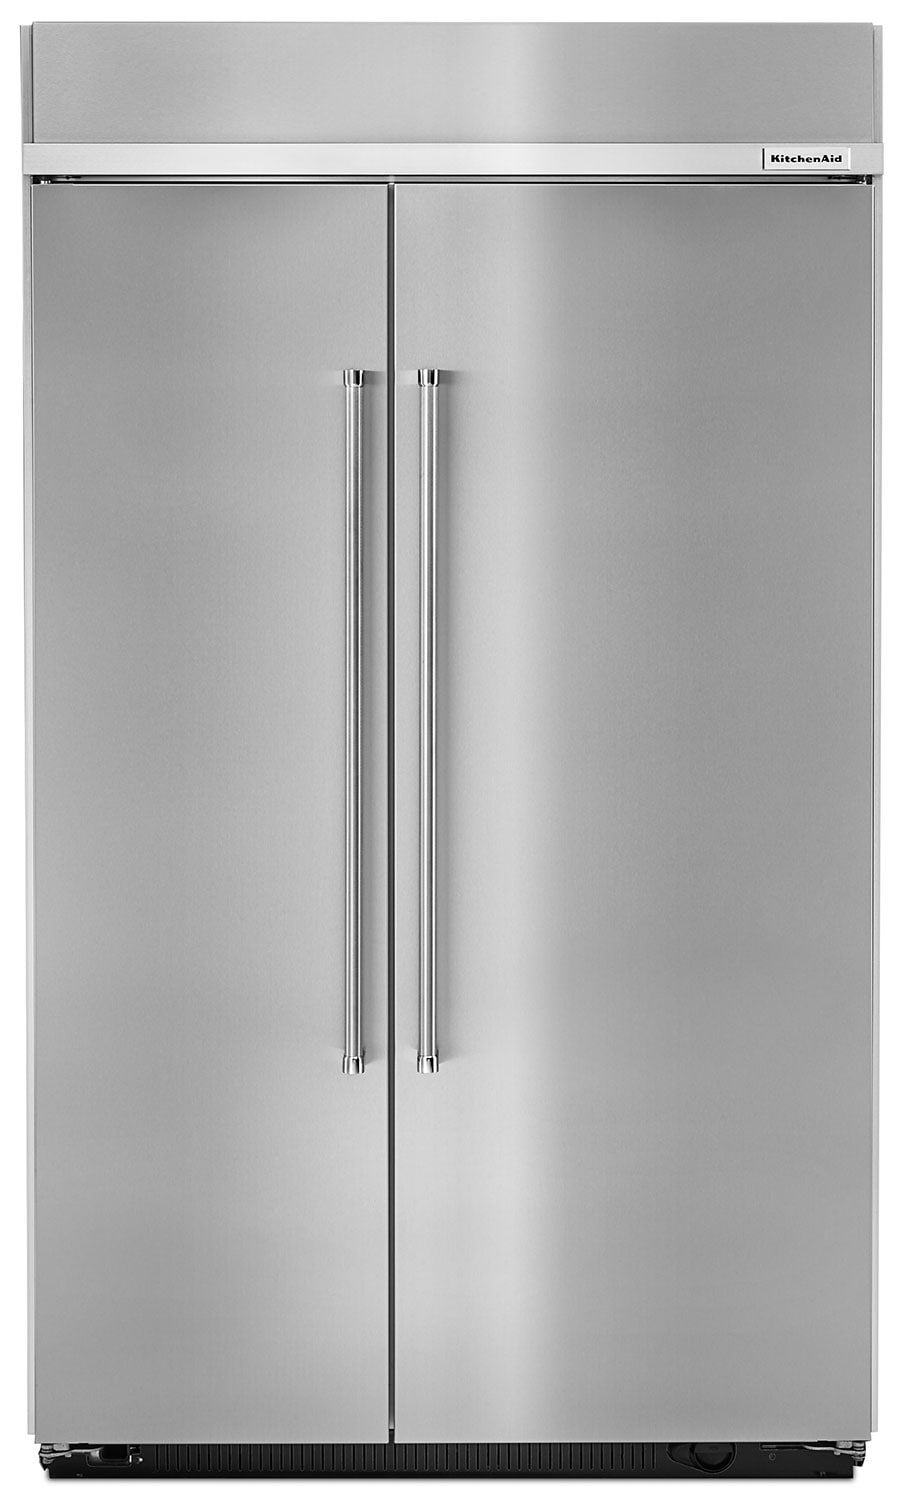 Refrigerators and Freezers - KitchenAid 30.0 Cu. Ft Built-In Side-by-Side Refrigerator – KBSN608ESS